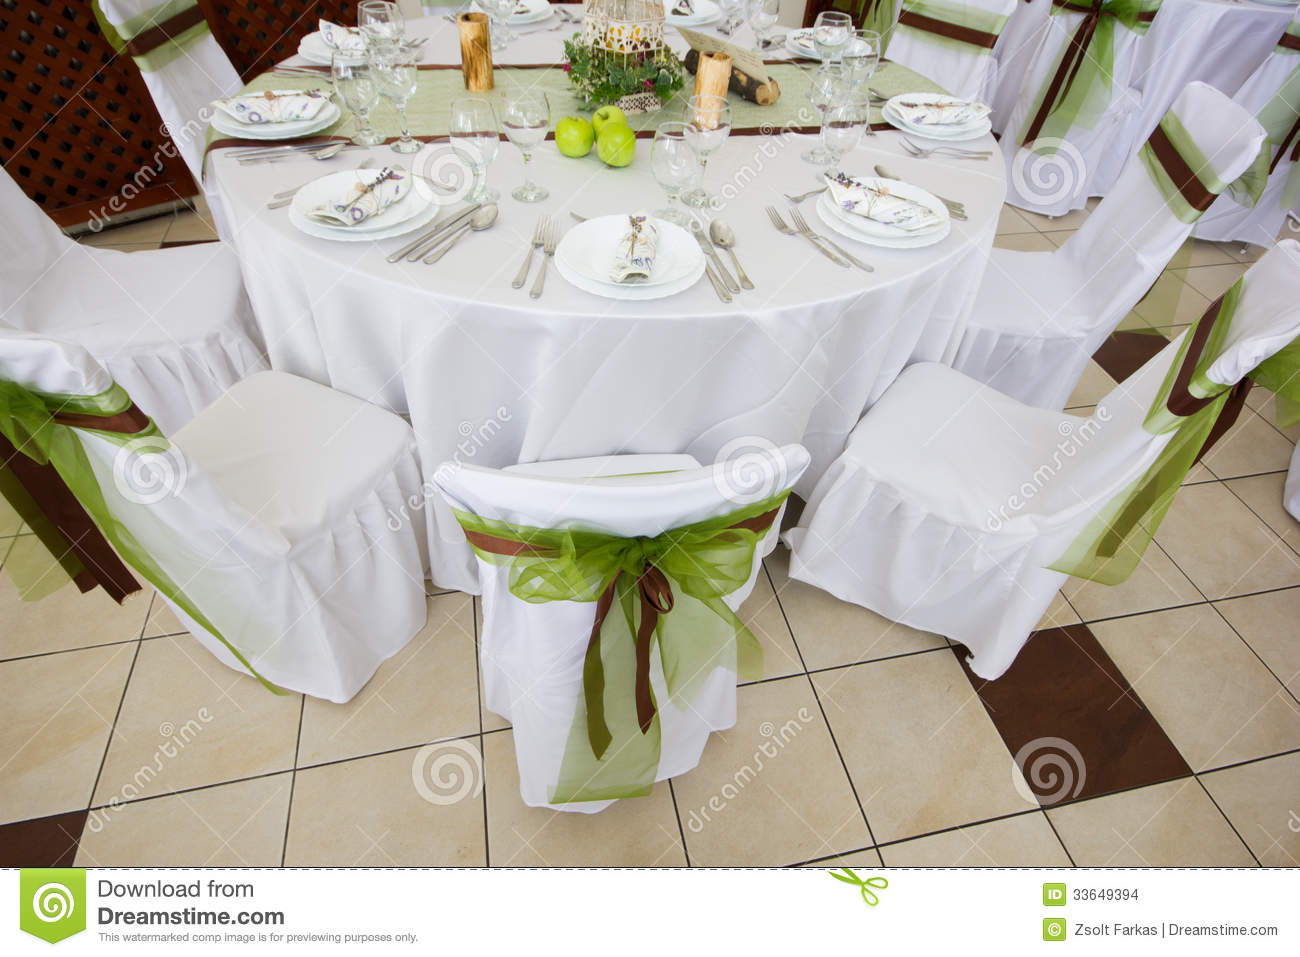 Wedding table set with decoration for fine dinning or another wedding table set with decoration for fine dinning or another catered event junglespirit Choice Image